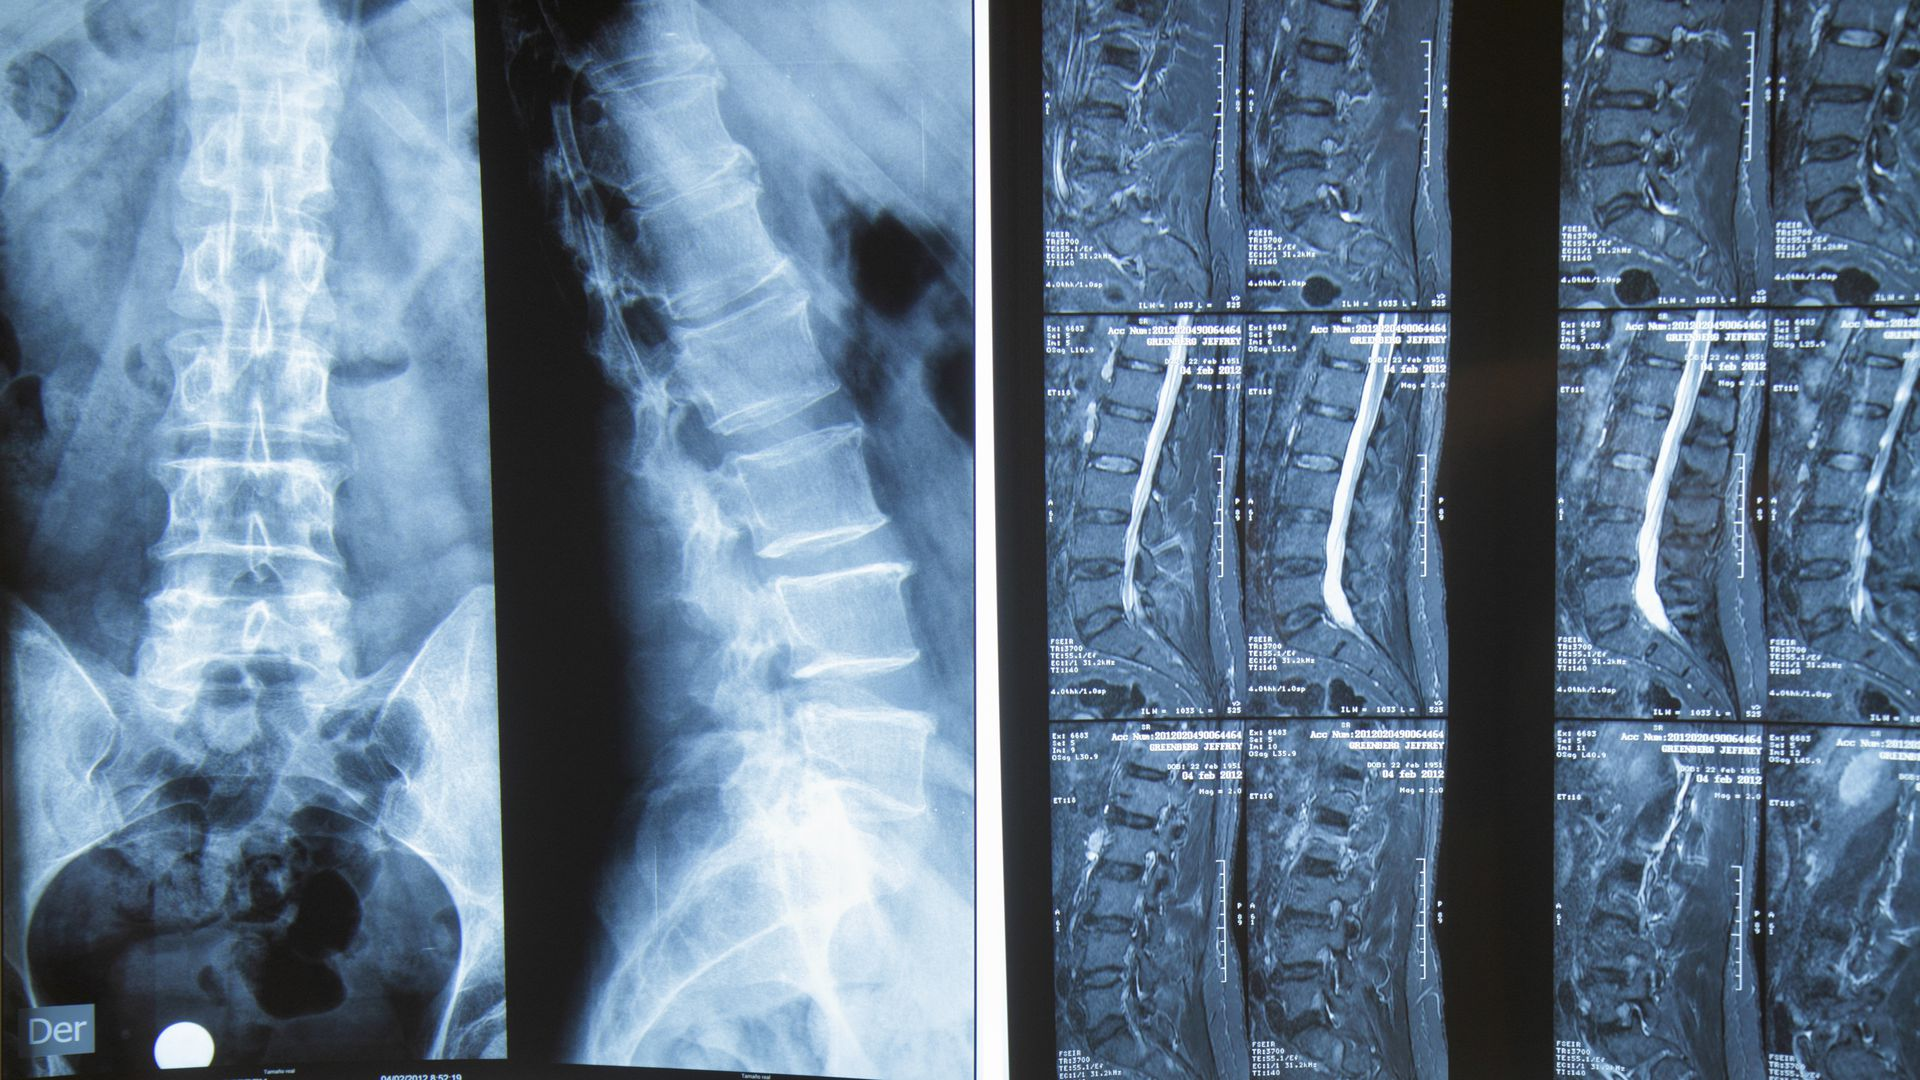 Spine x-rays at a hospital.